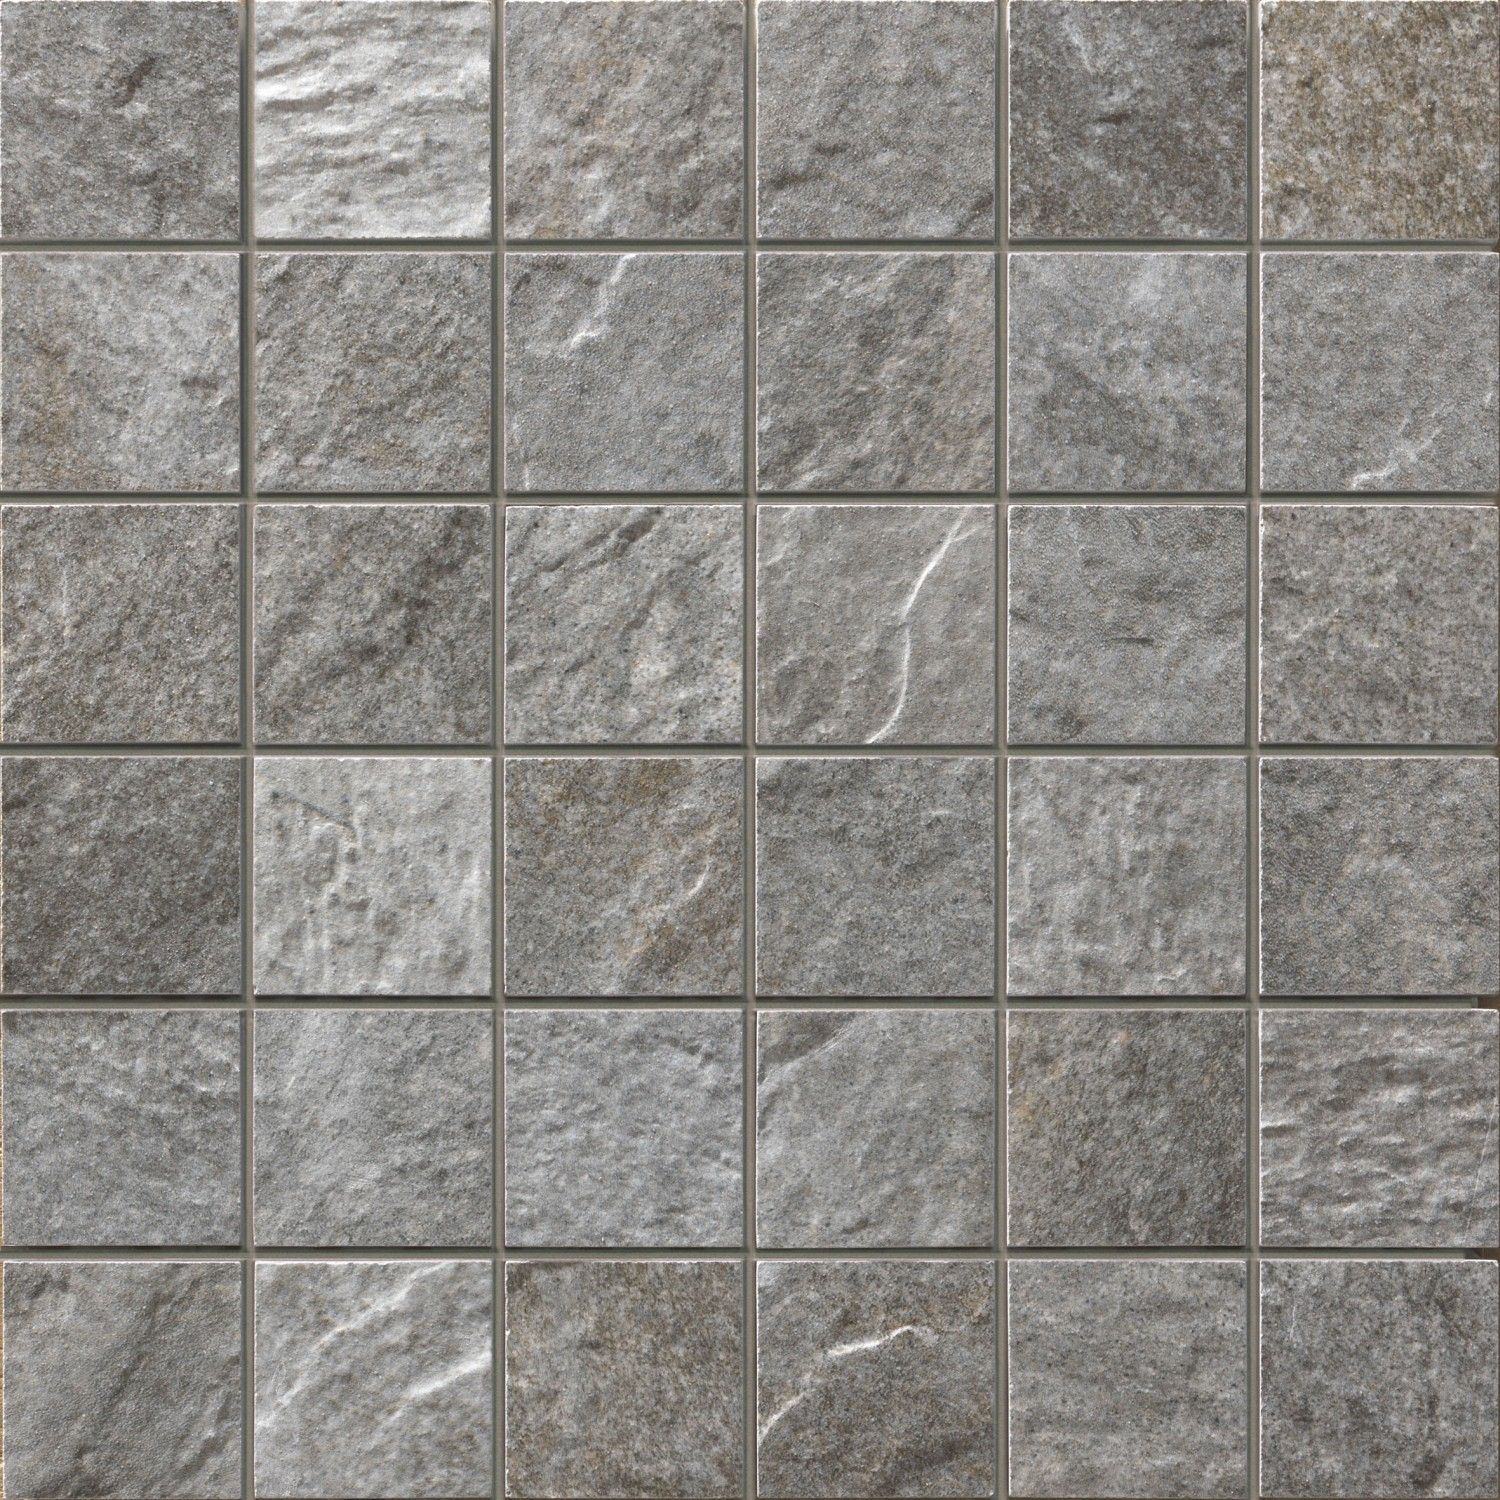 Textured Tiles For Bathroom Floor Bathroom Exclusiv